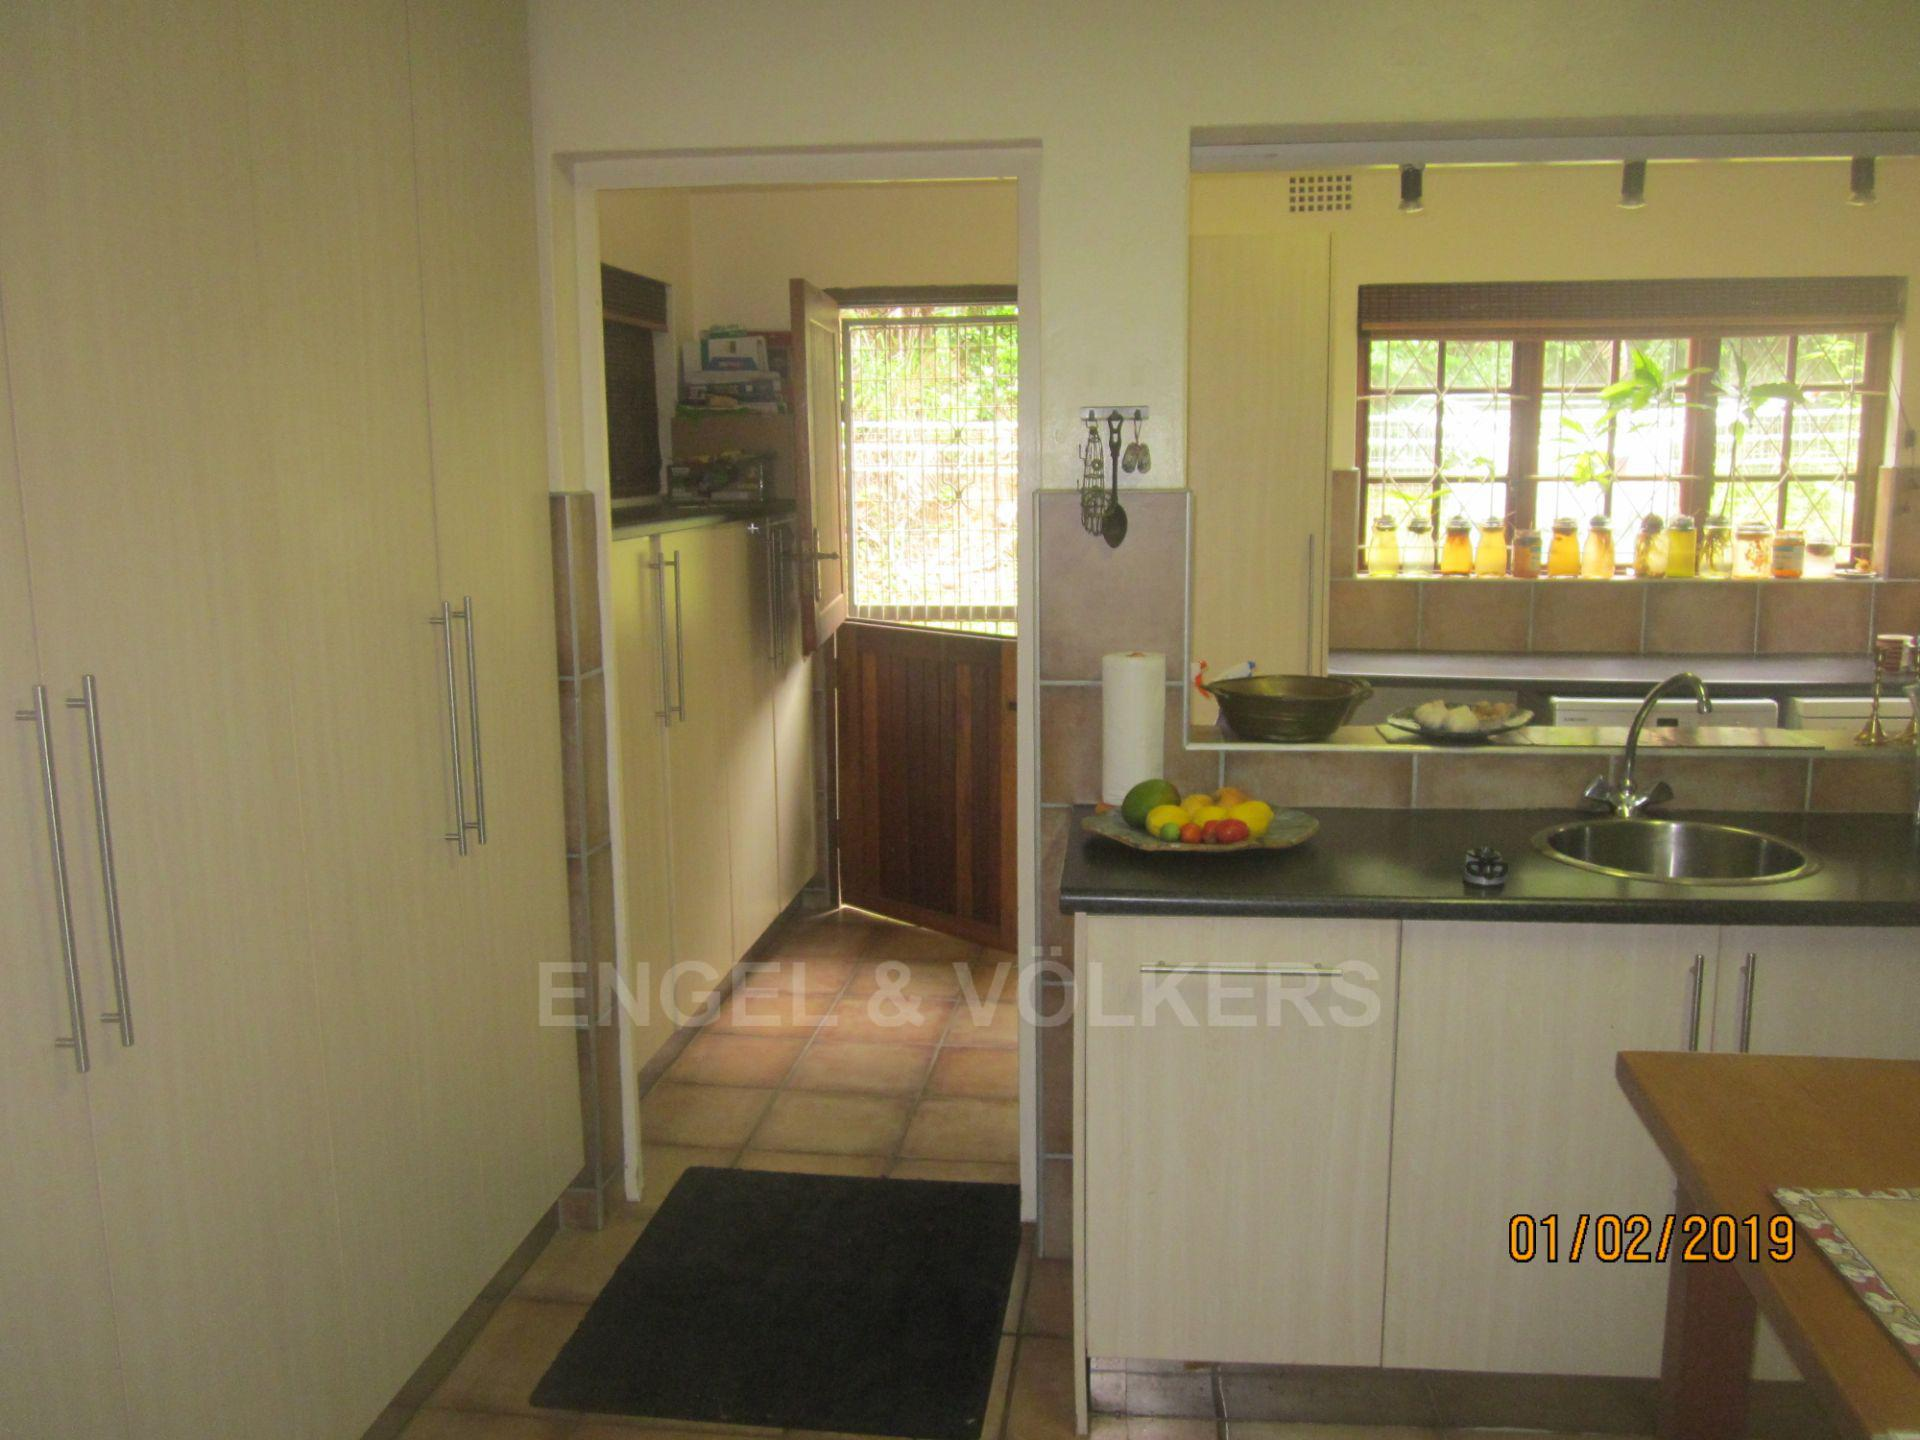 House in Palm Beach - 010 Kitchen - Hatch to Scullery.JPG